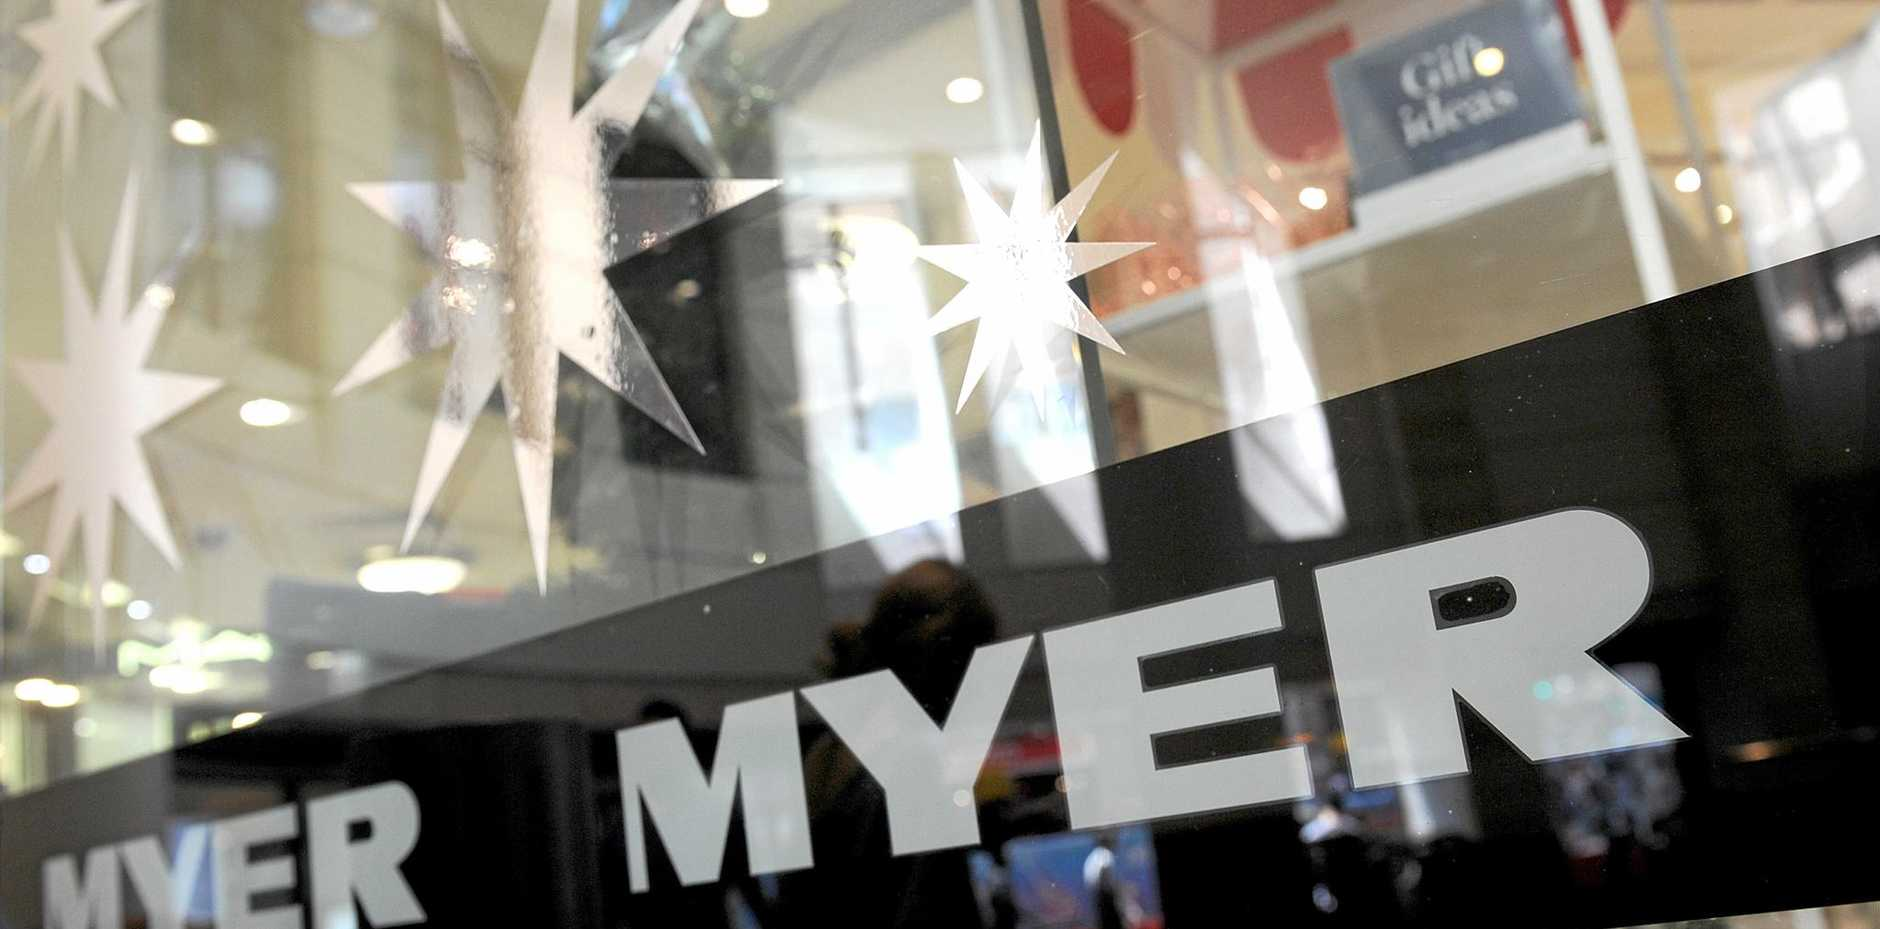 Myer signage at a retail store in Sydney, Friday, Nov. 11, 2016. (AAP Image/Joel Carrett) NO ARCHIVING